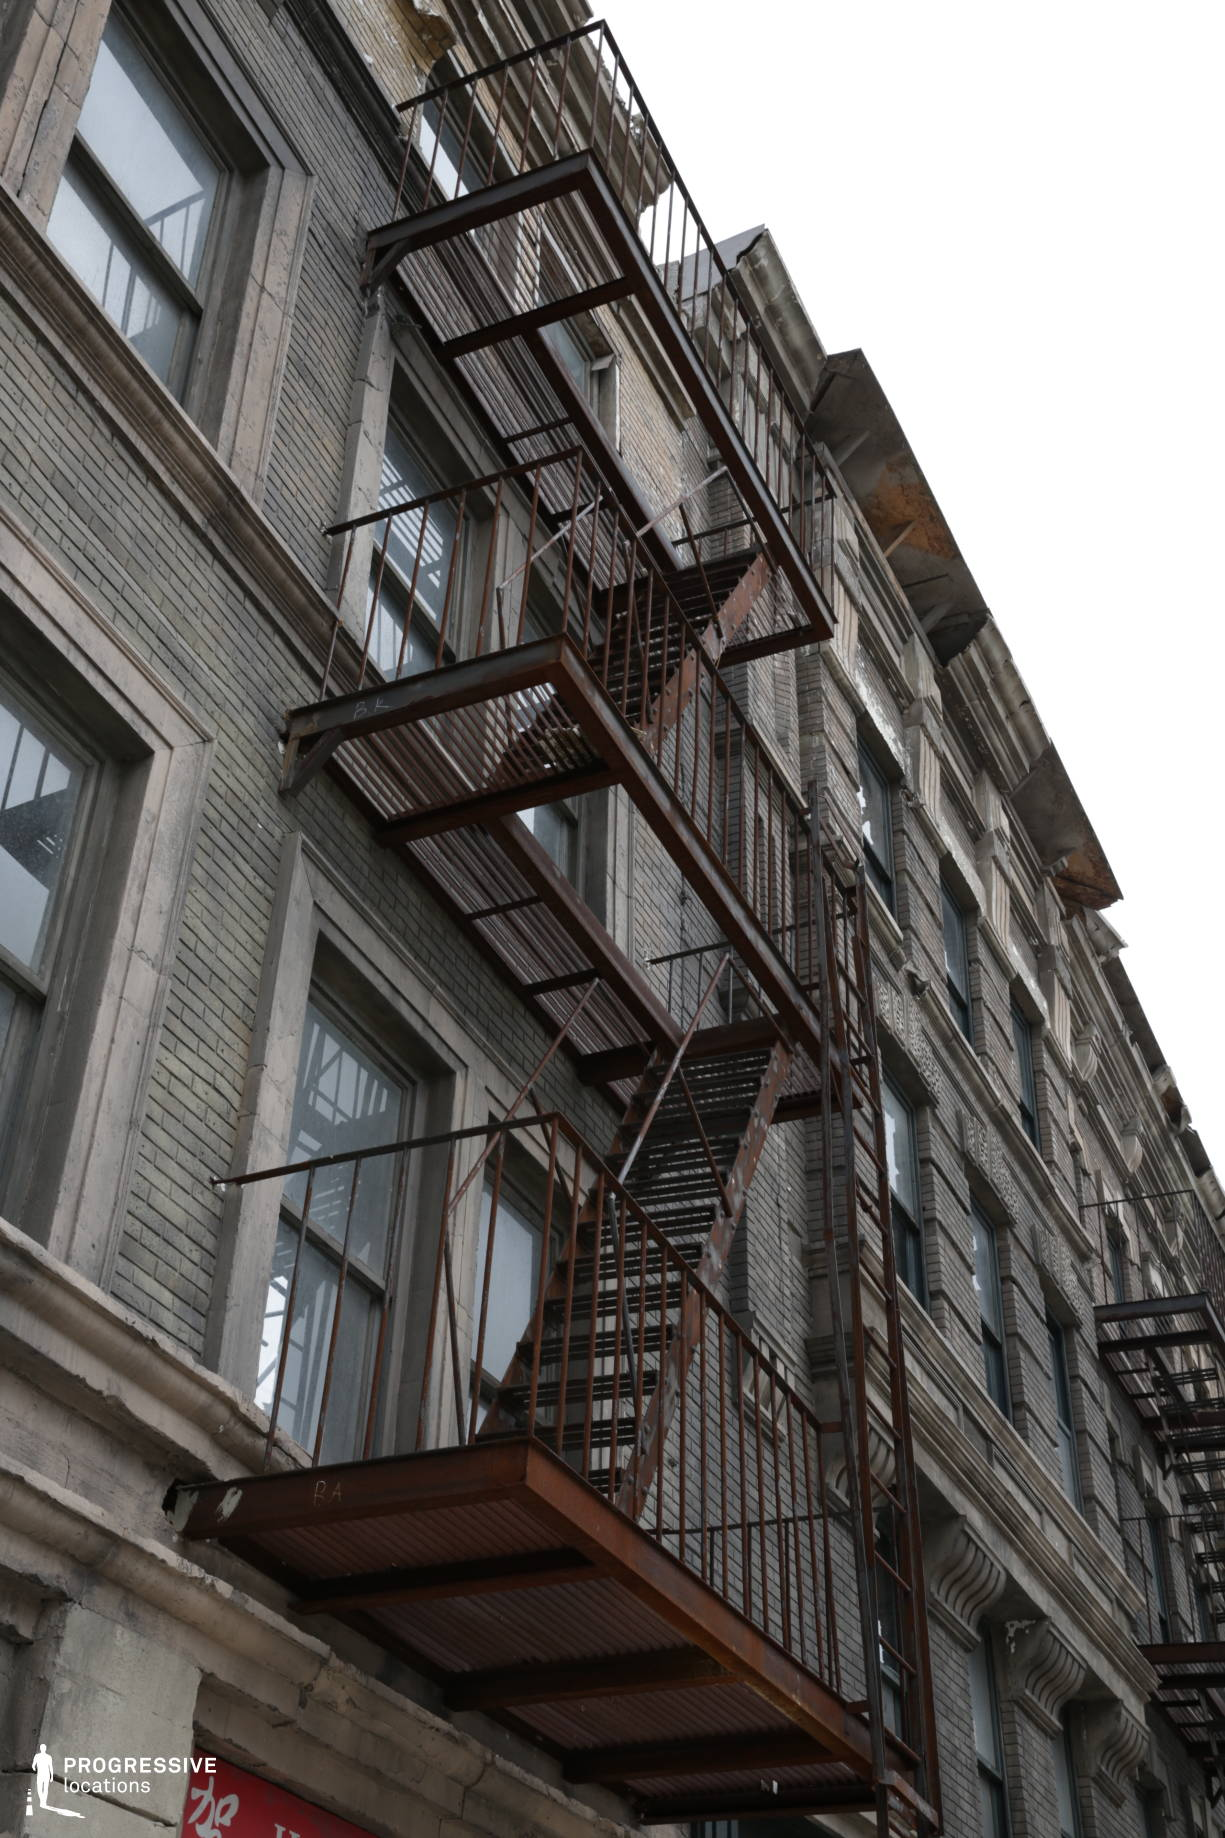 New York Street Backlot: Fire Escape